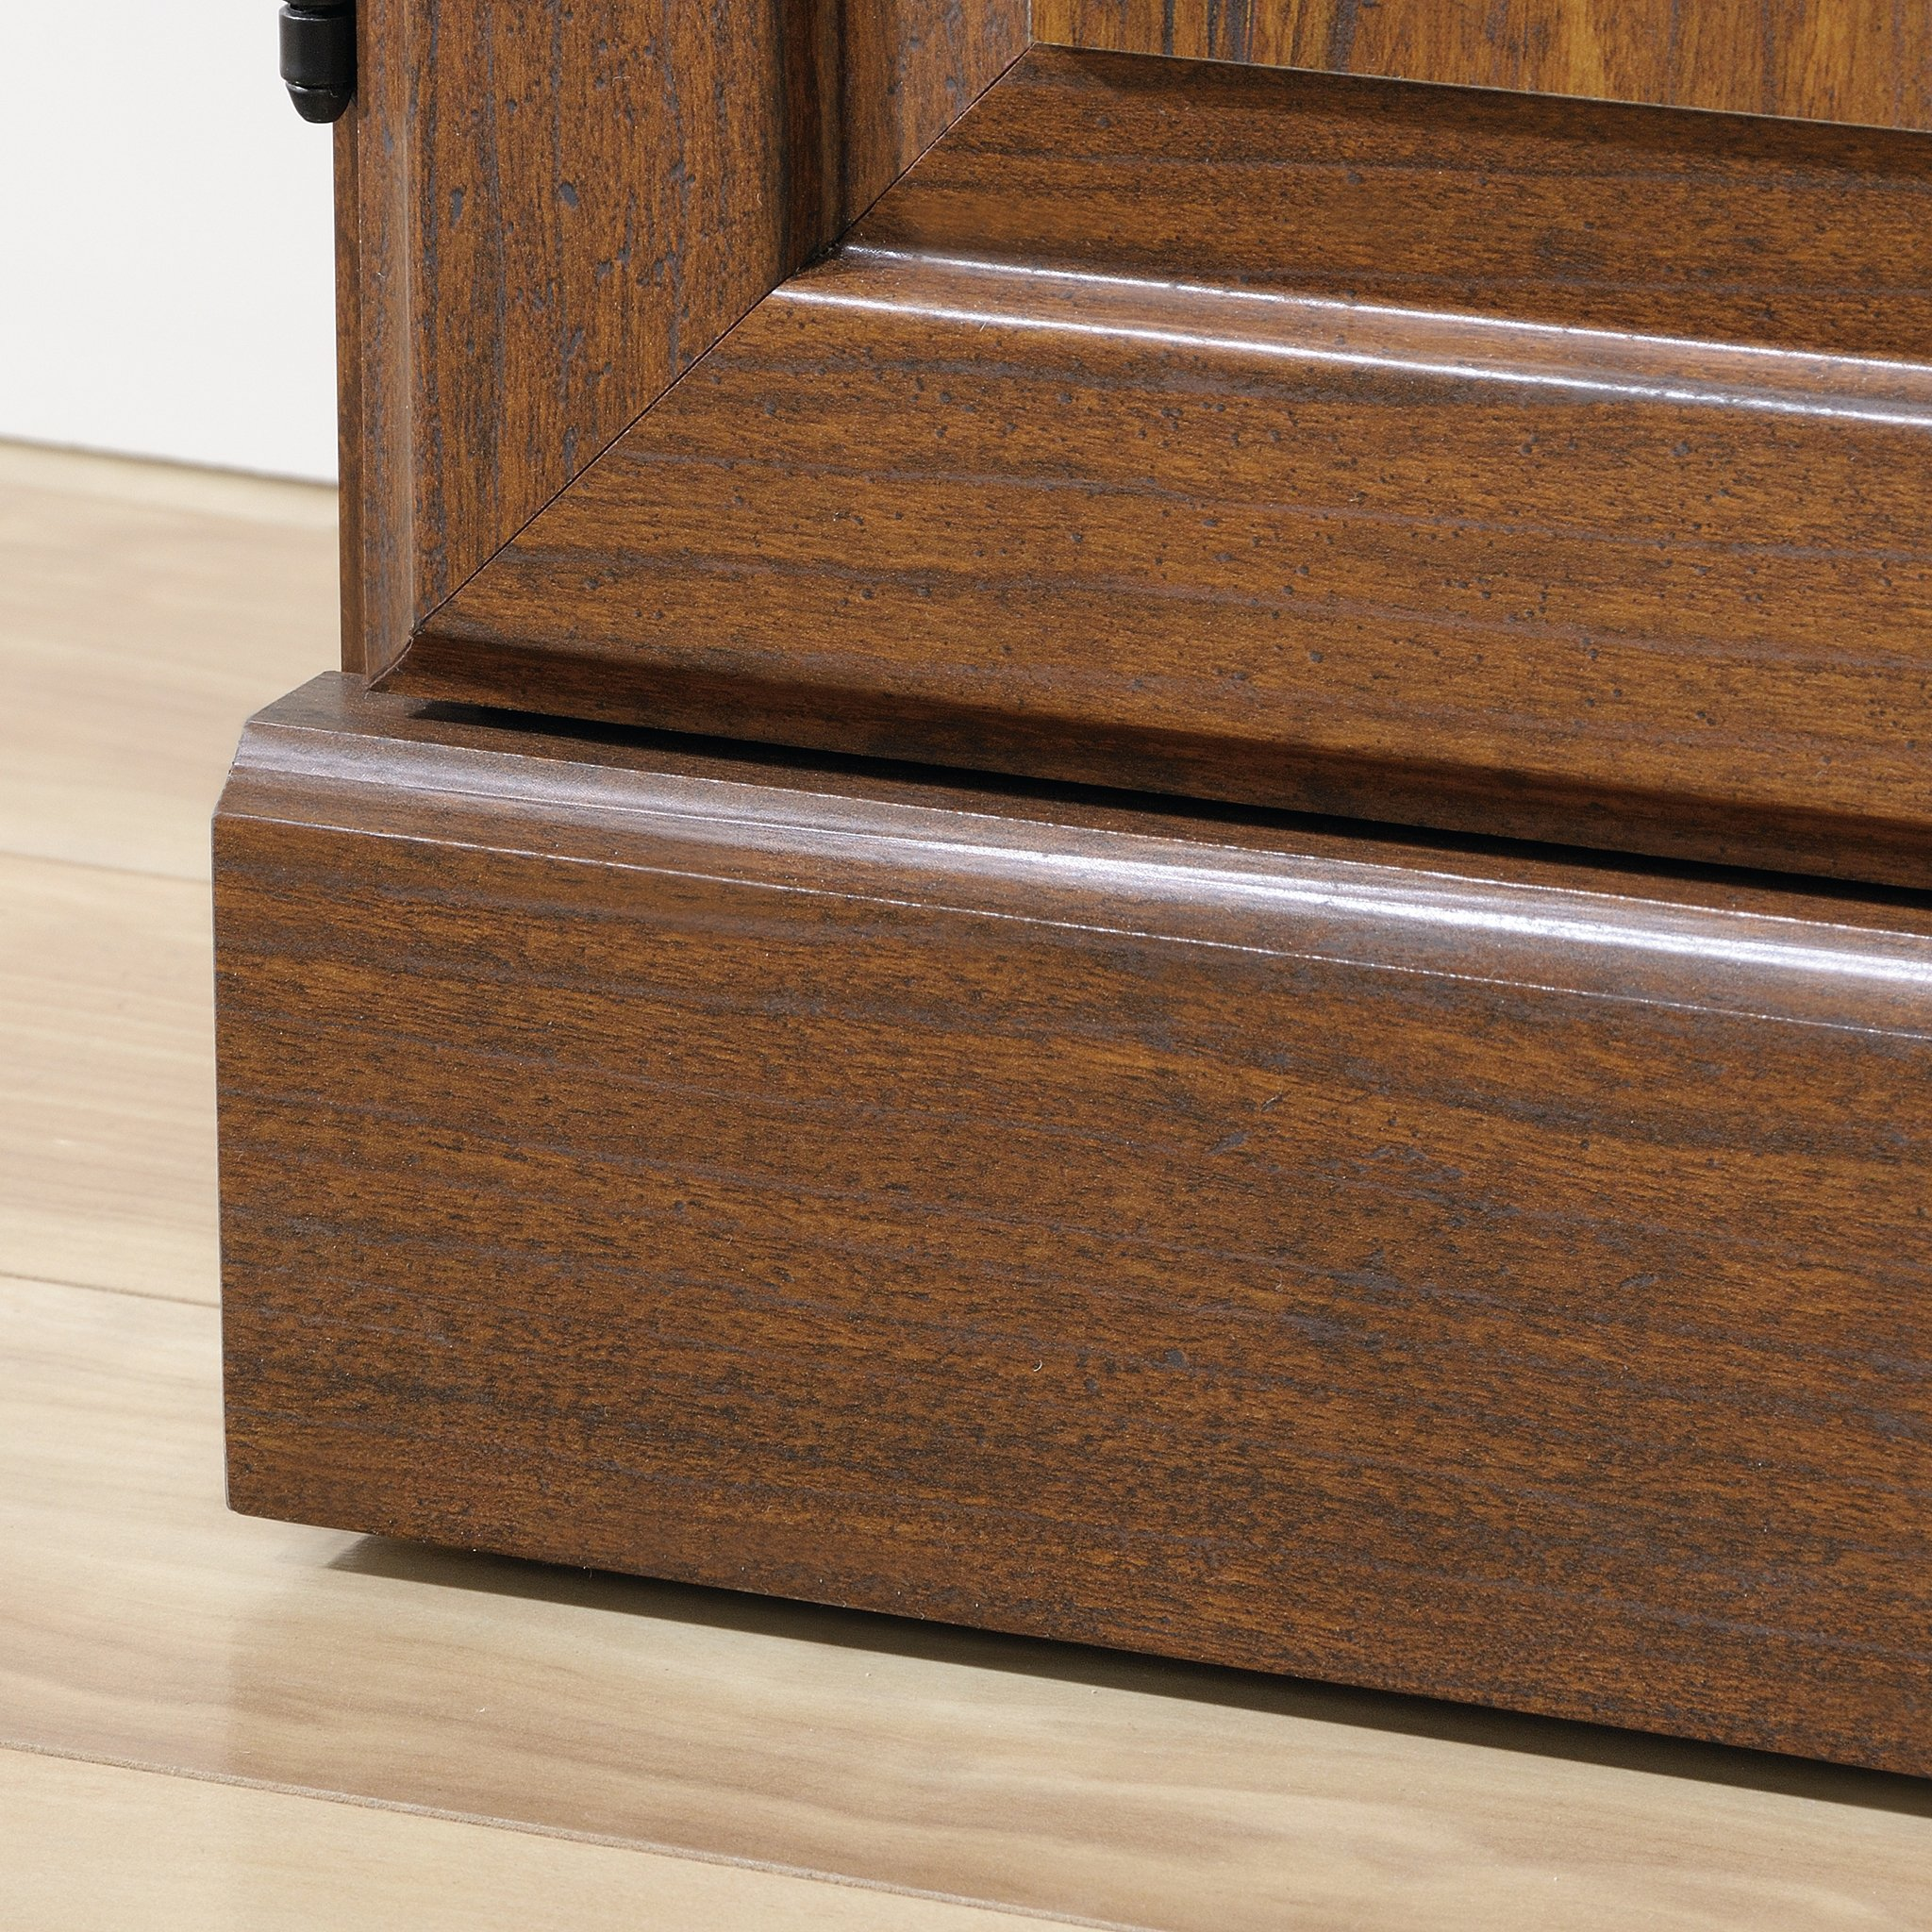 Sauder 418734 Orchard Hills Library with Doors, L: 29.45'' x W: 13.47'' x H: 71.50'', Milled Cherry finish by Sauder (Image #7)